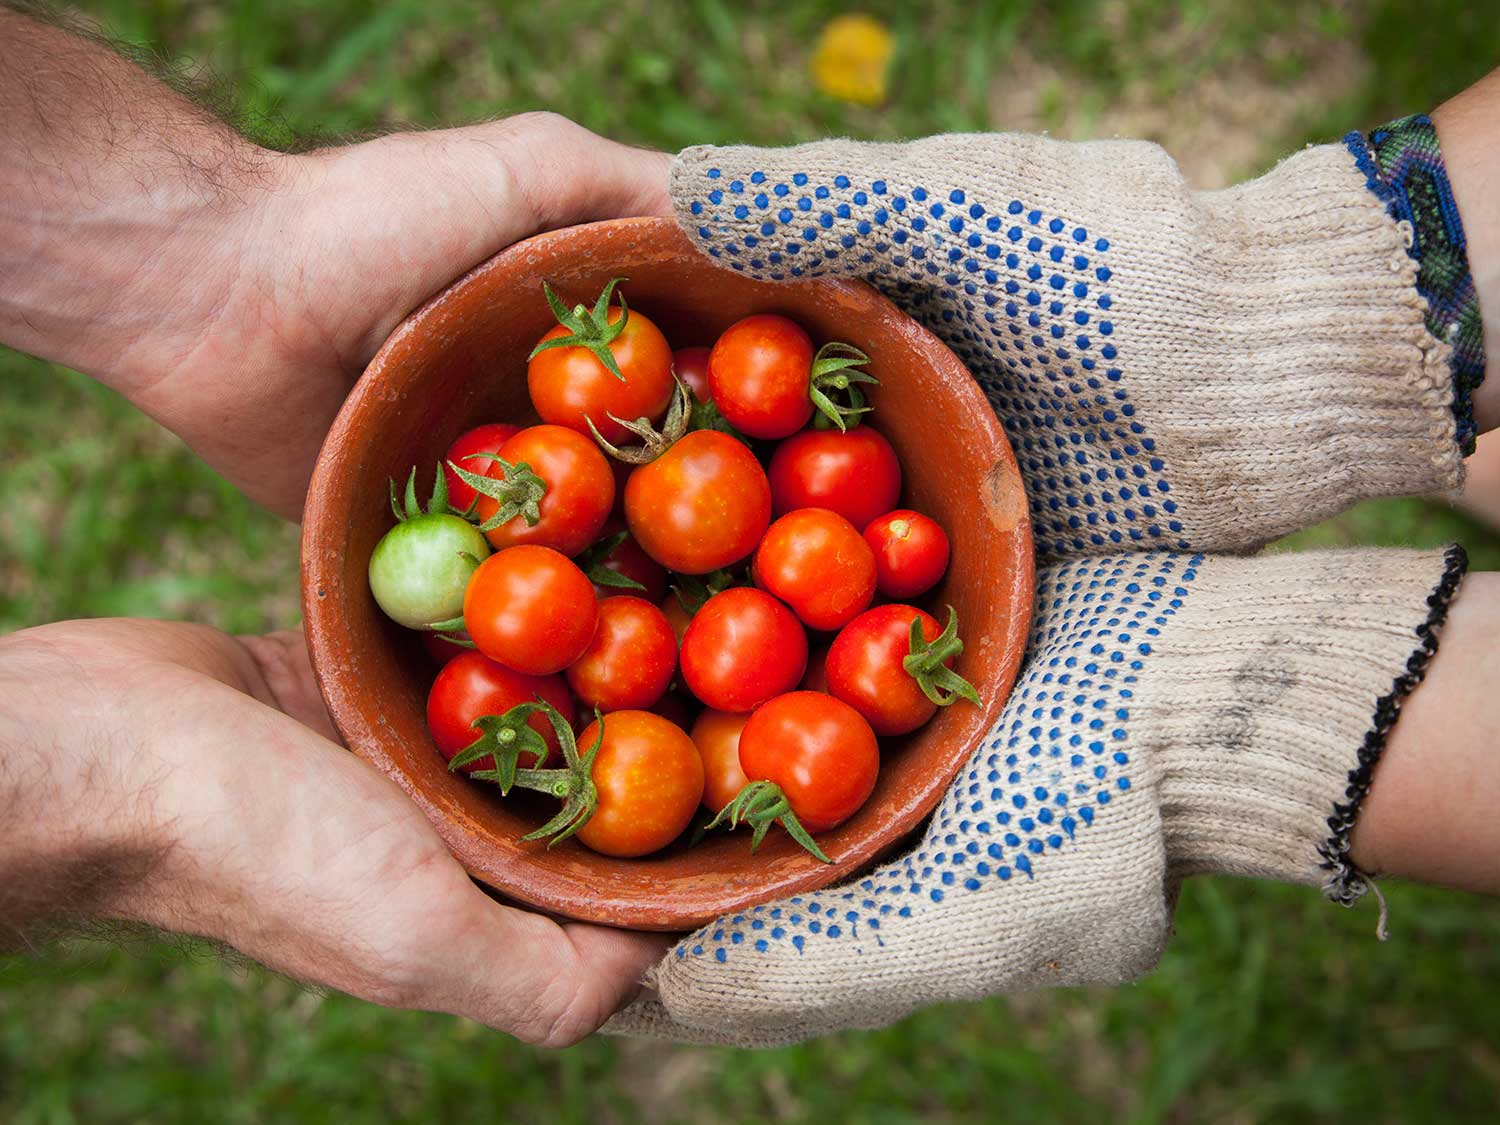 Wearing gardening gloves while holding bowl of tomatoes.